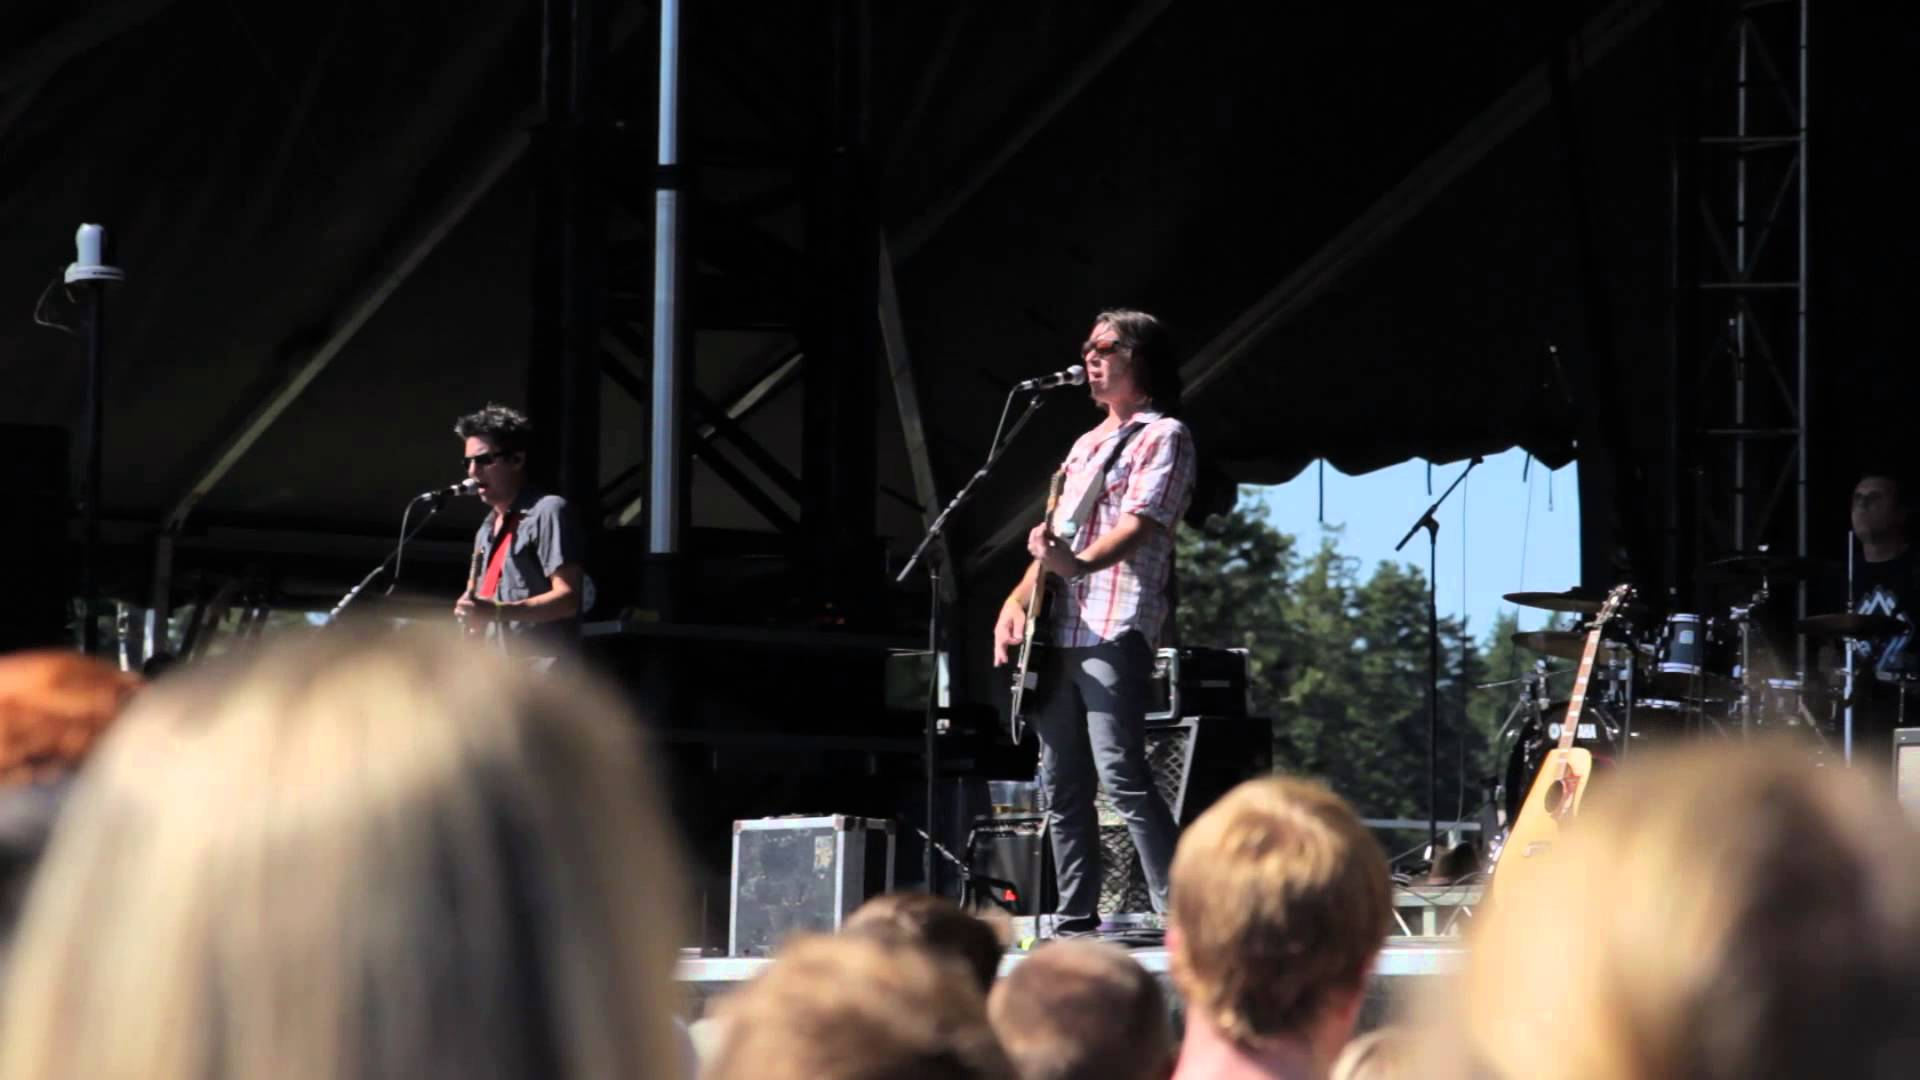 Video Archive- 2013-07-13: 54-40 at Rock The Shores 2013